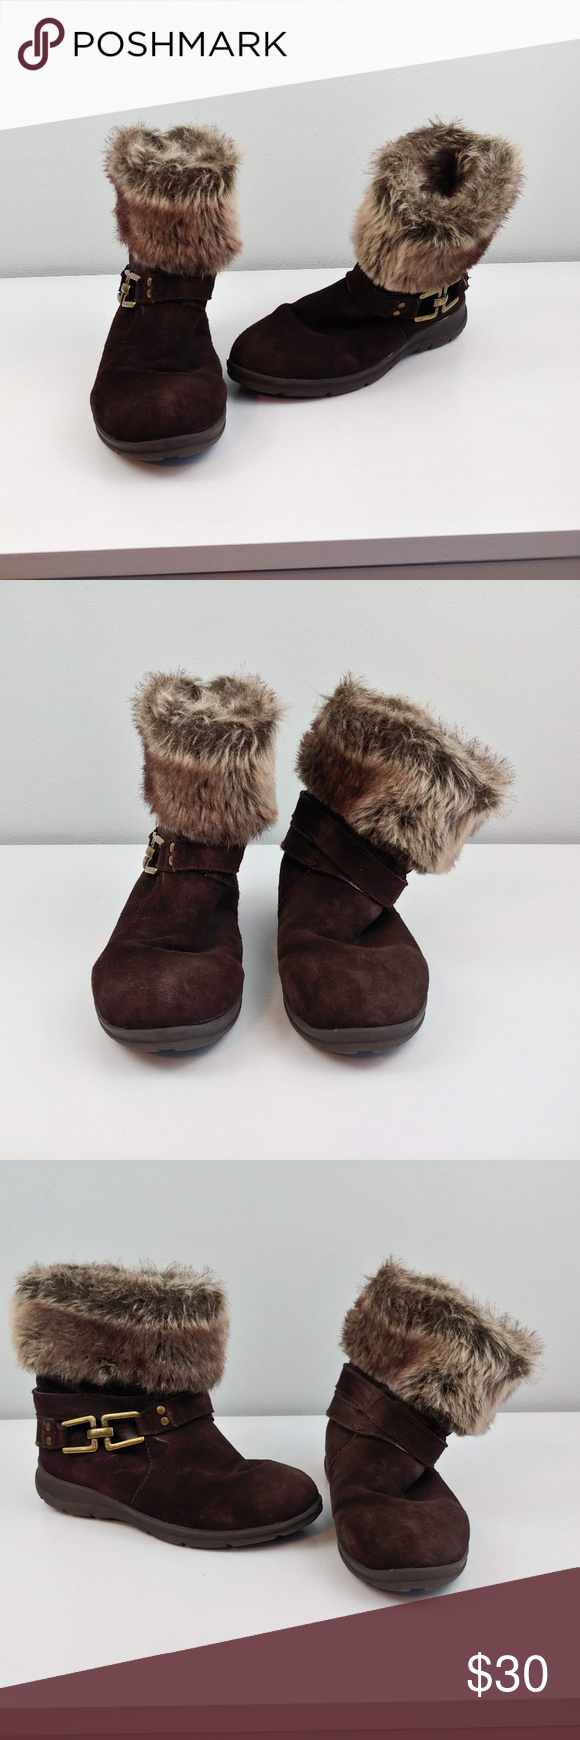 68d73744c5d Womens 7 White Mountain ankle winter boots brown Womens 7 White Mountain  ankle winter boots brown